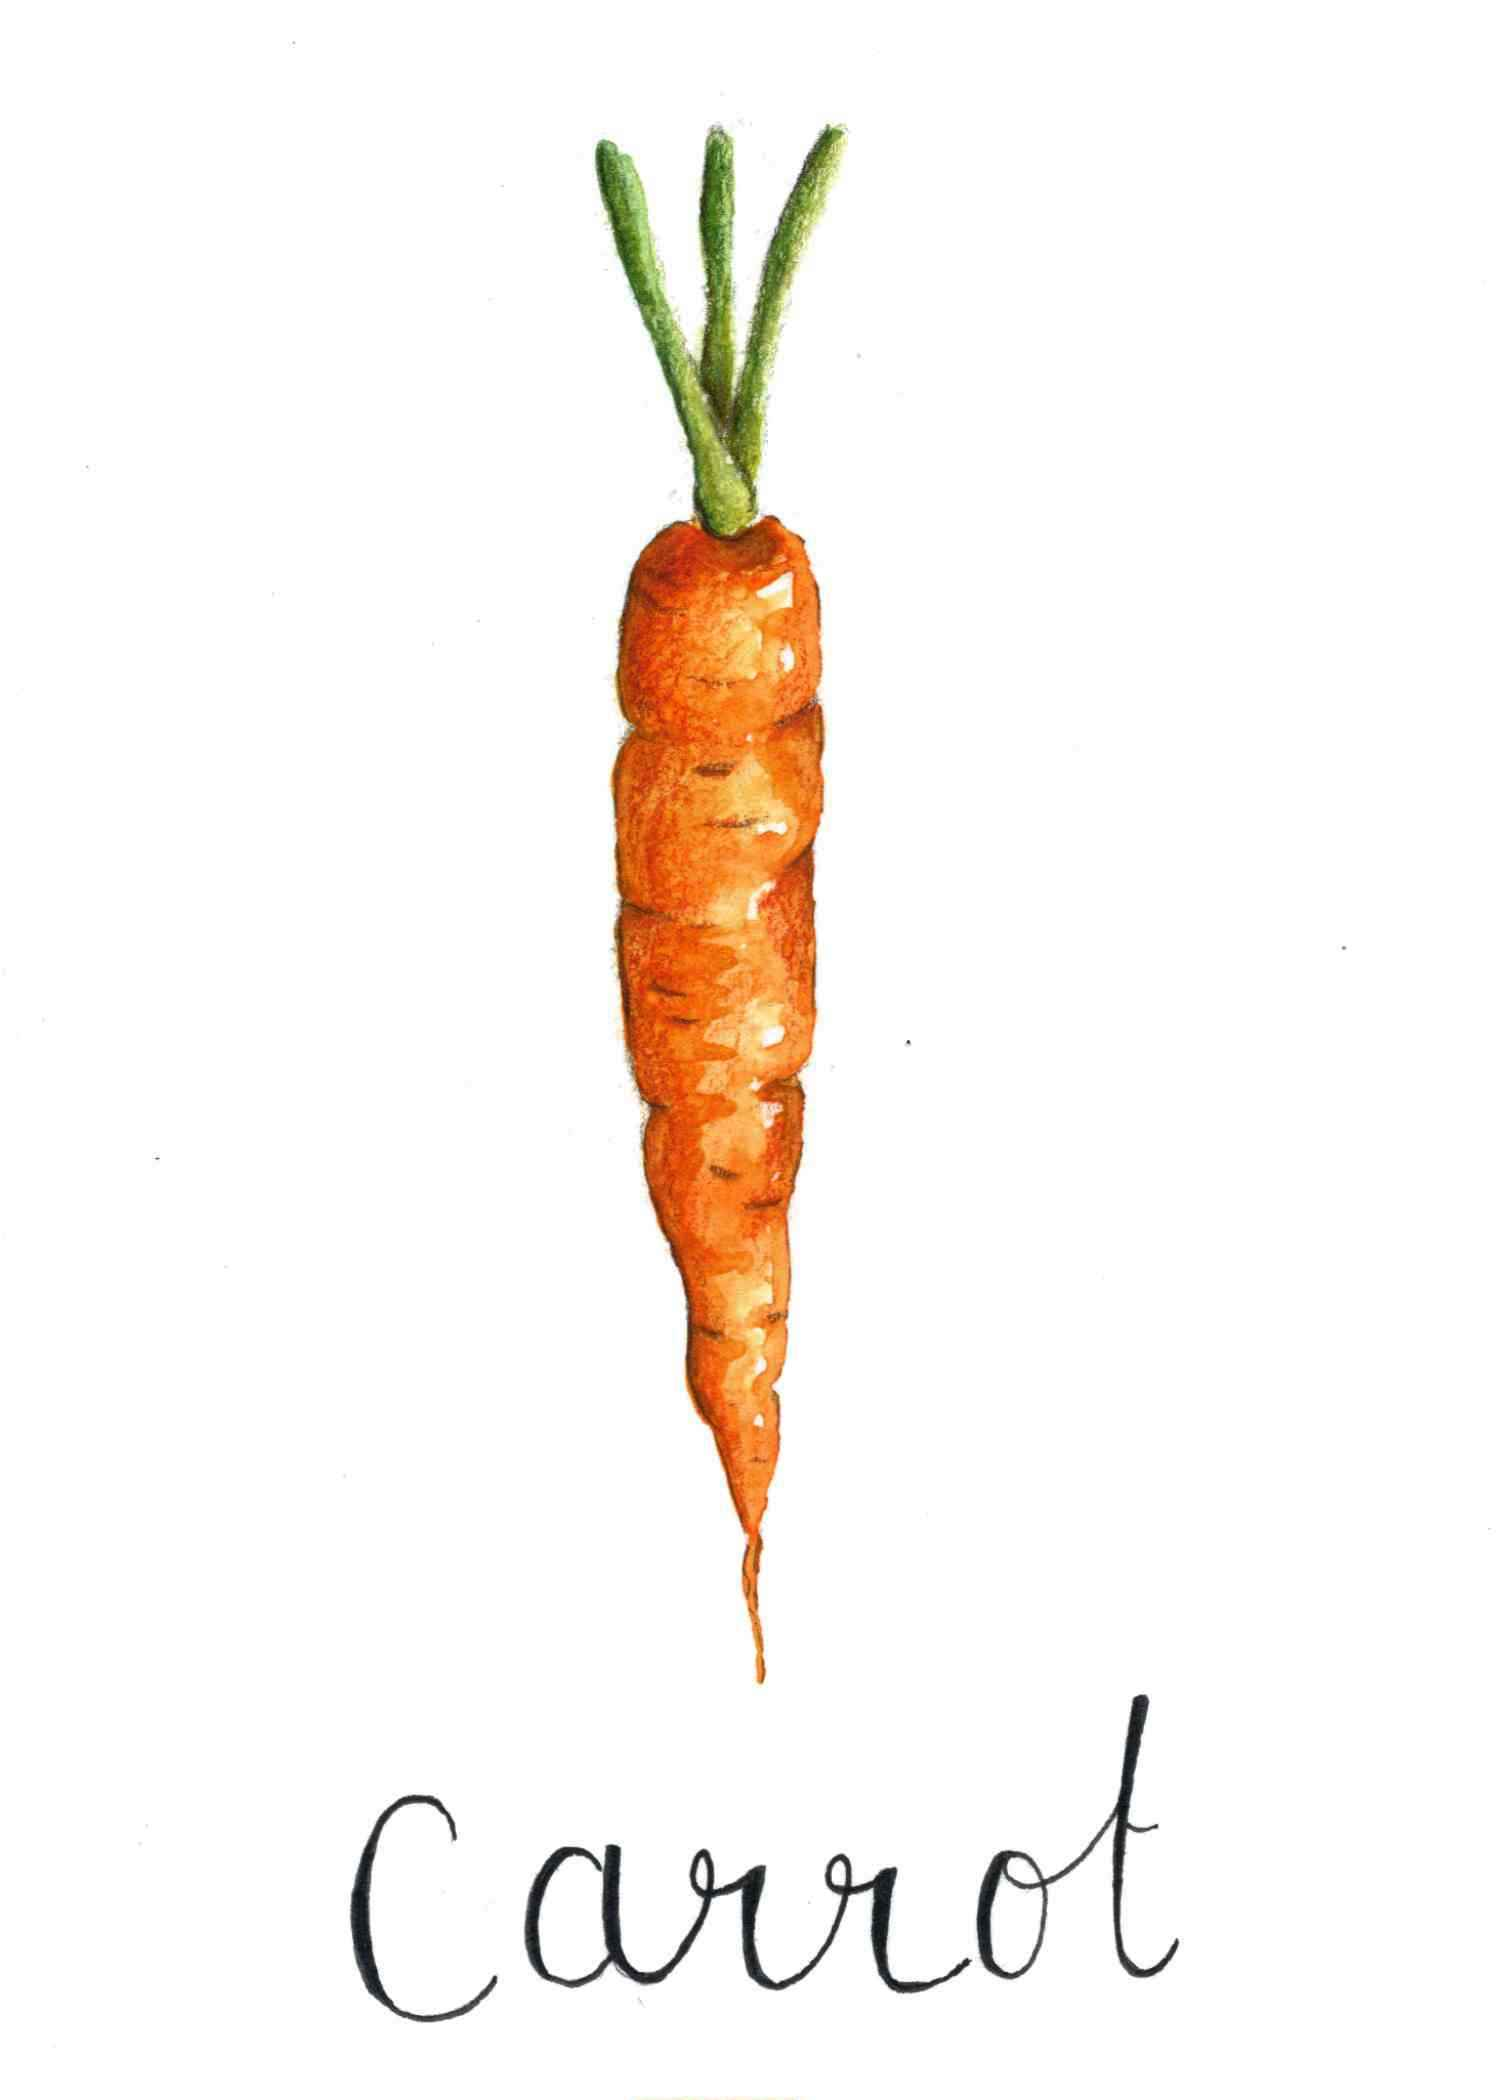 Veggie Series (Carrot)